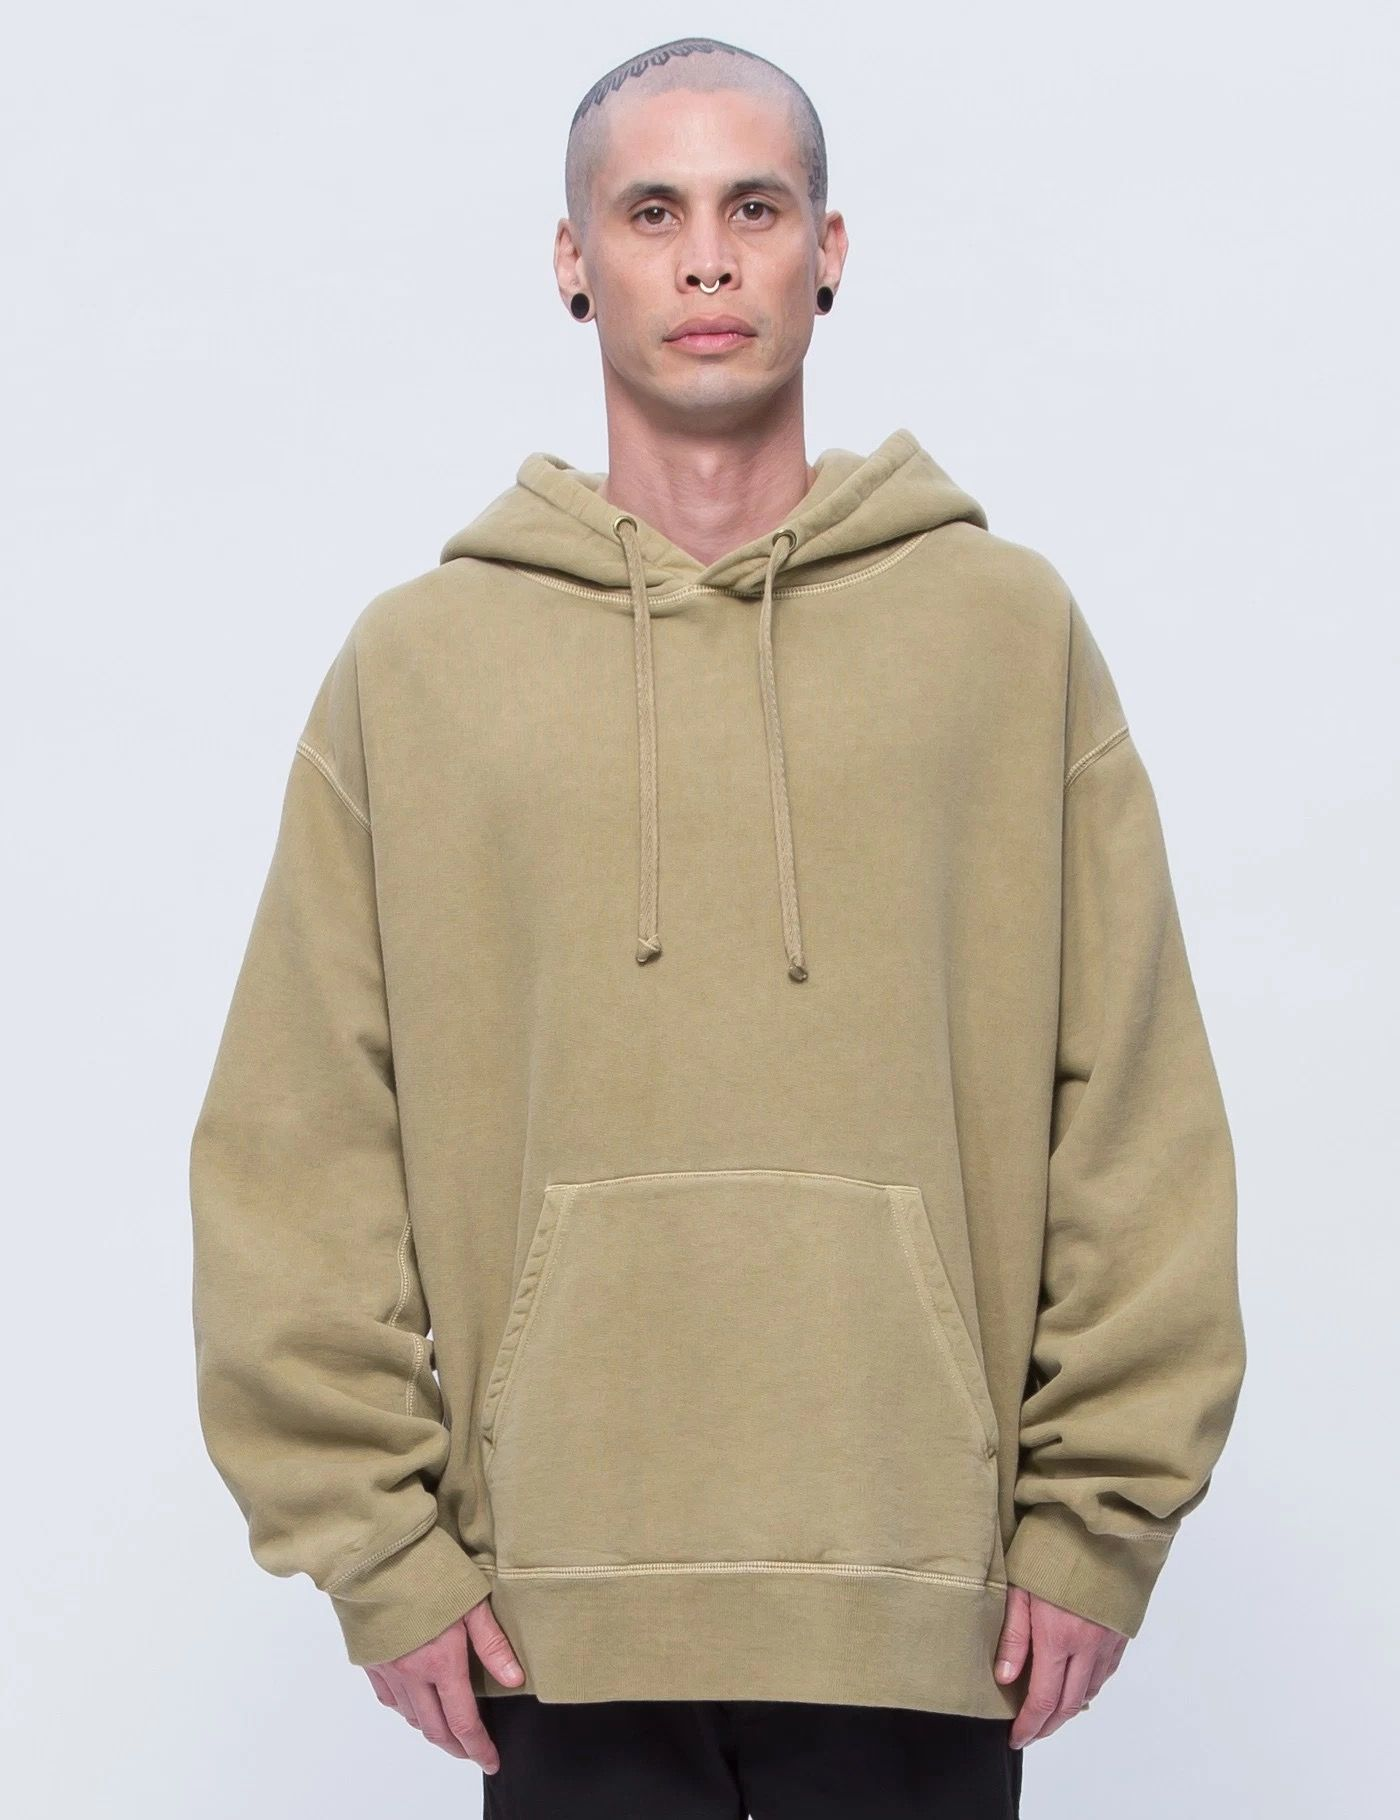 cab7e5c19 Yeezy season 3 Relaxed Hoodie in military dust | MENS FASHION | Mens ...